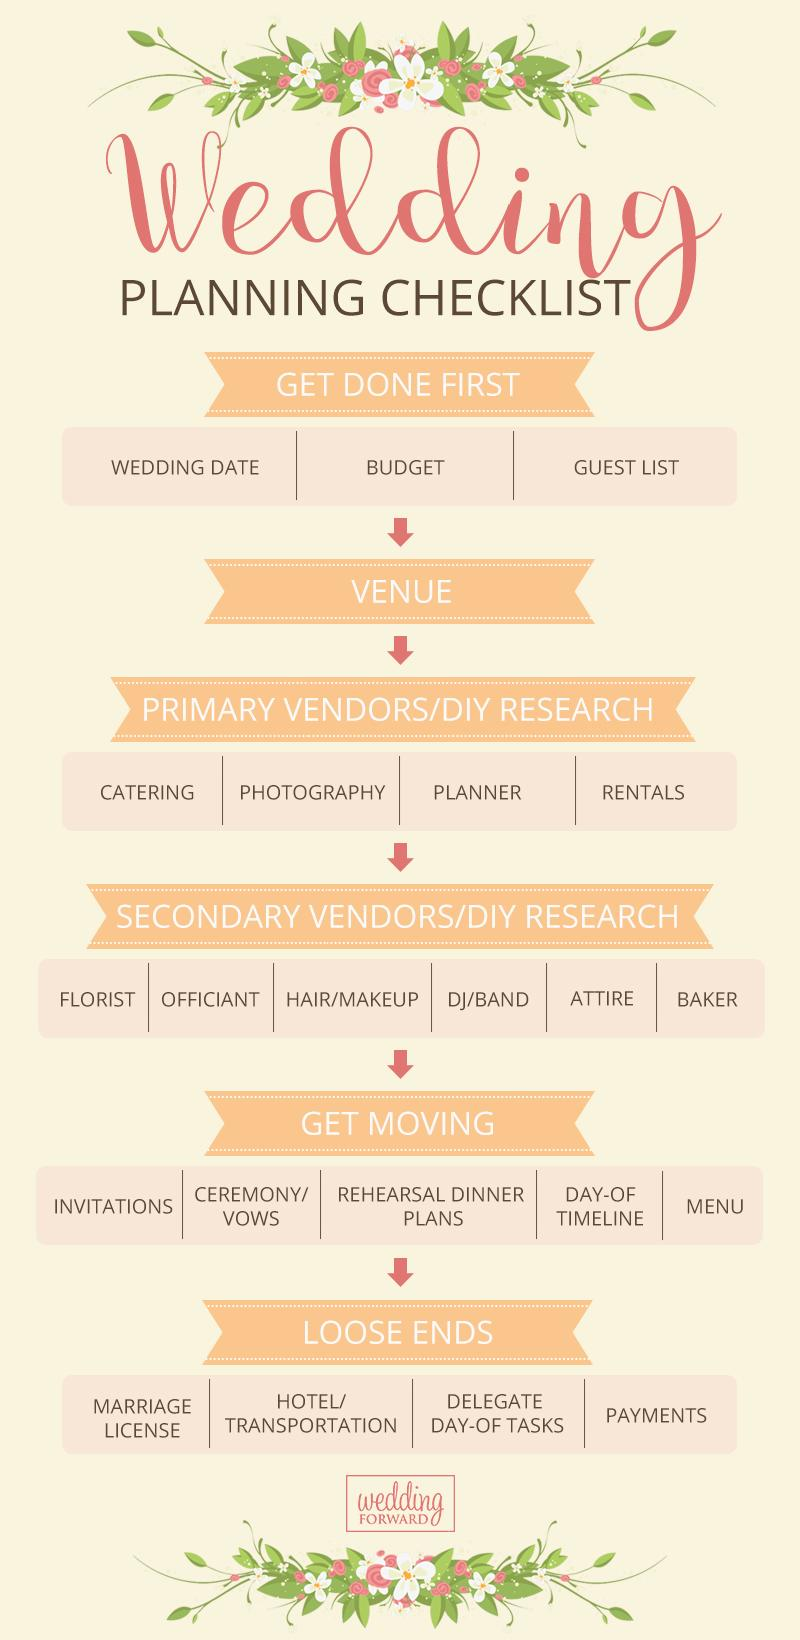 Wedding Timeline Checklist.Wedding Checklist For The Organized Future Bride Complete Free